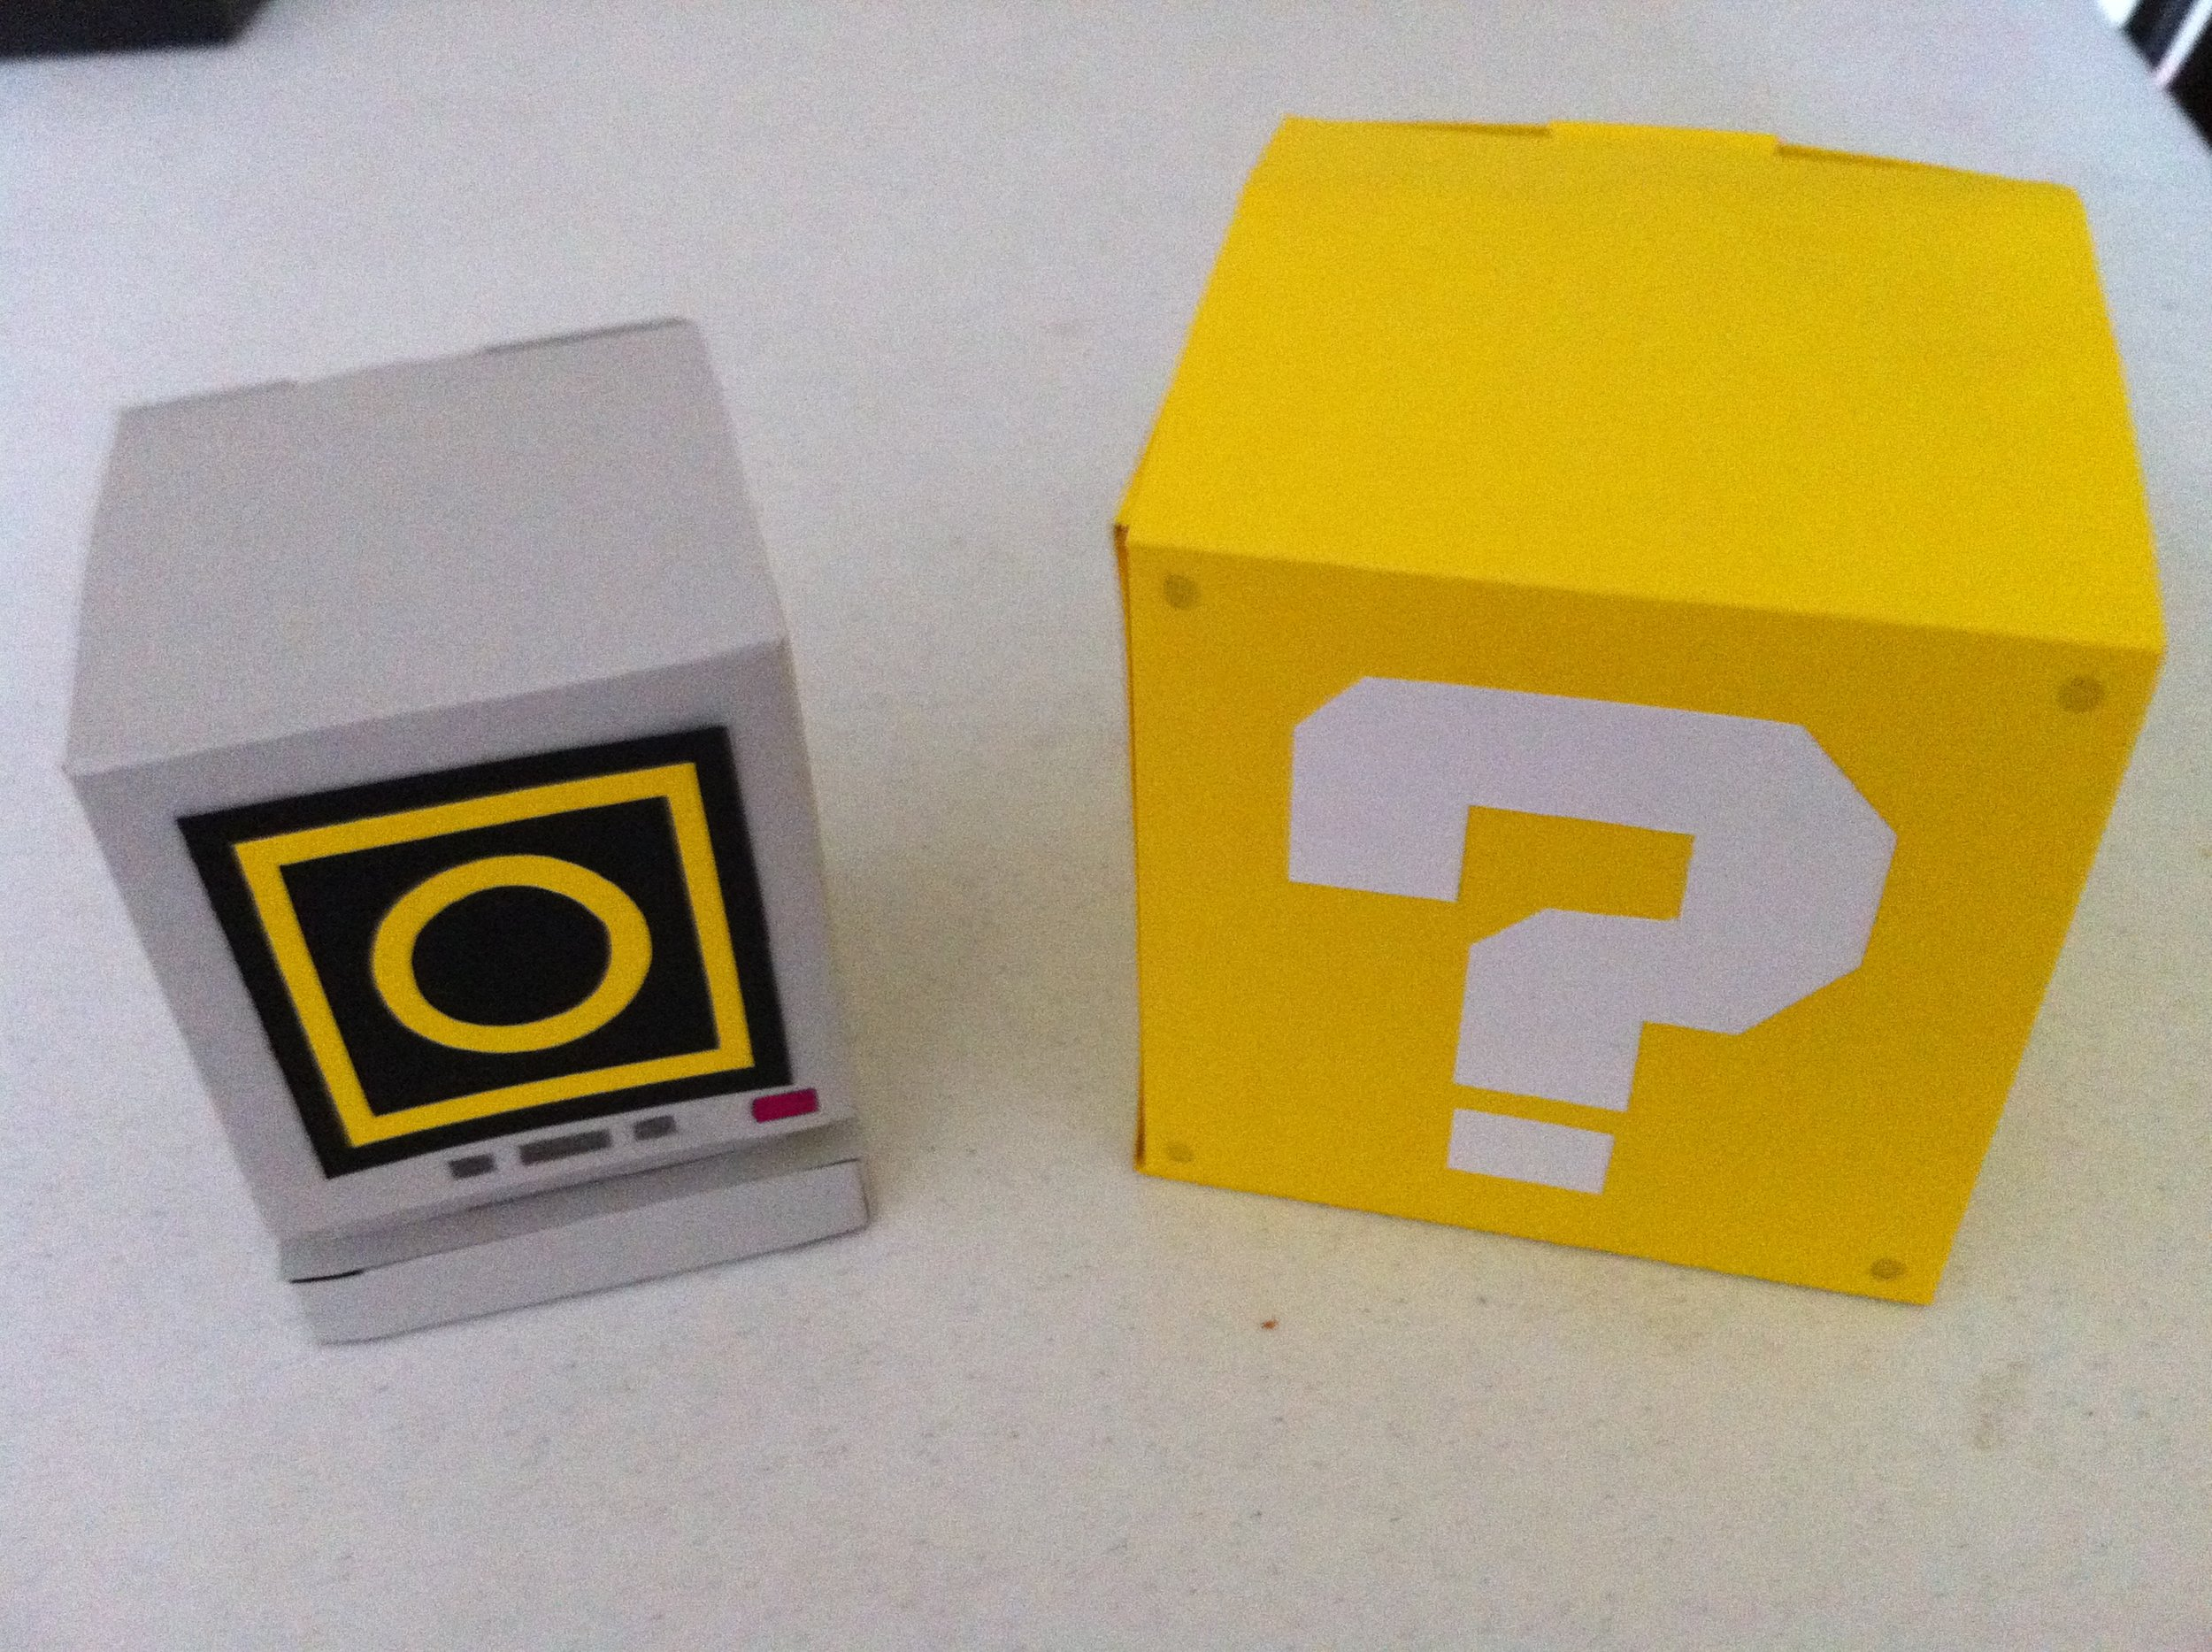 Sonic Ring Box & Mario Question Block Containers, 2011